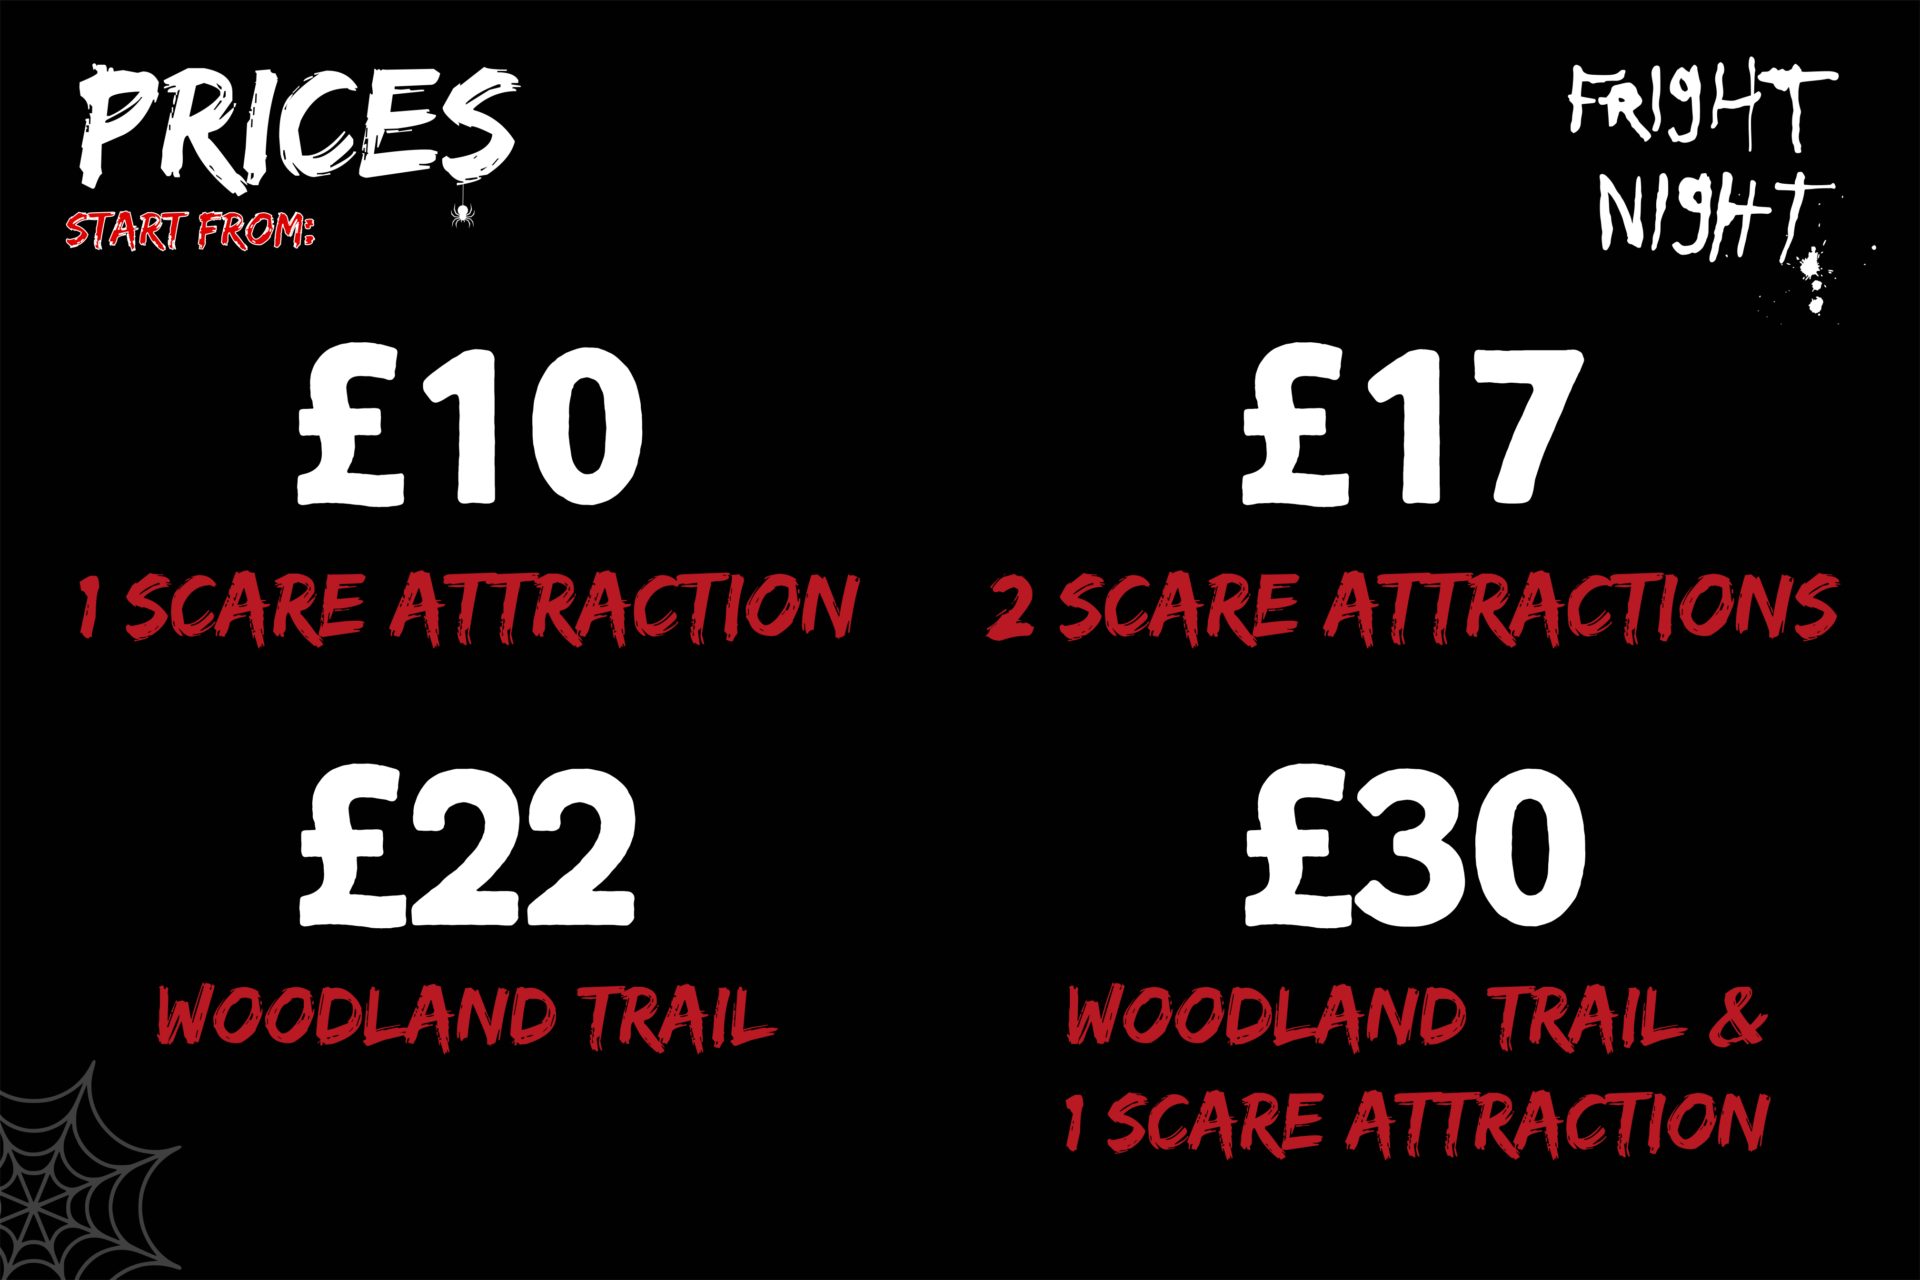 Fright Night pricing image for website update